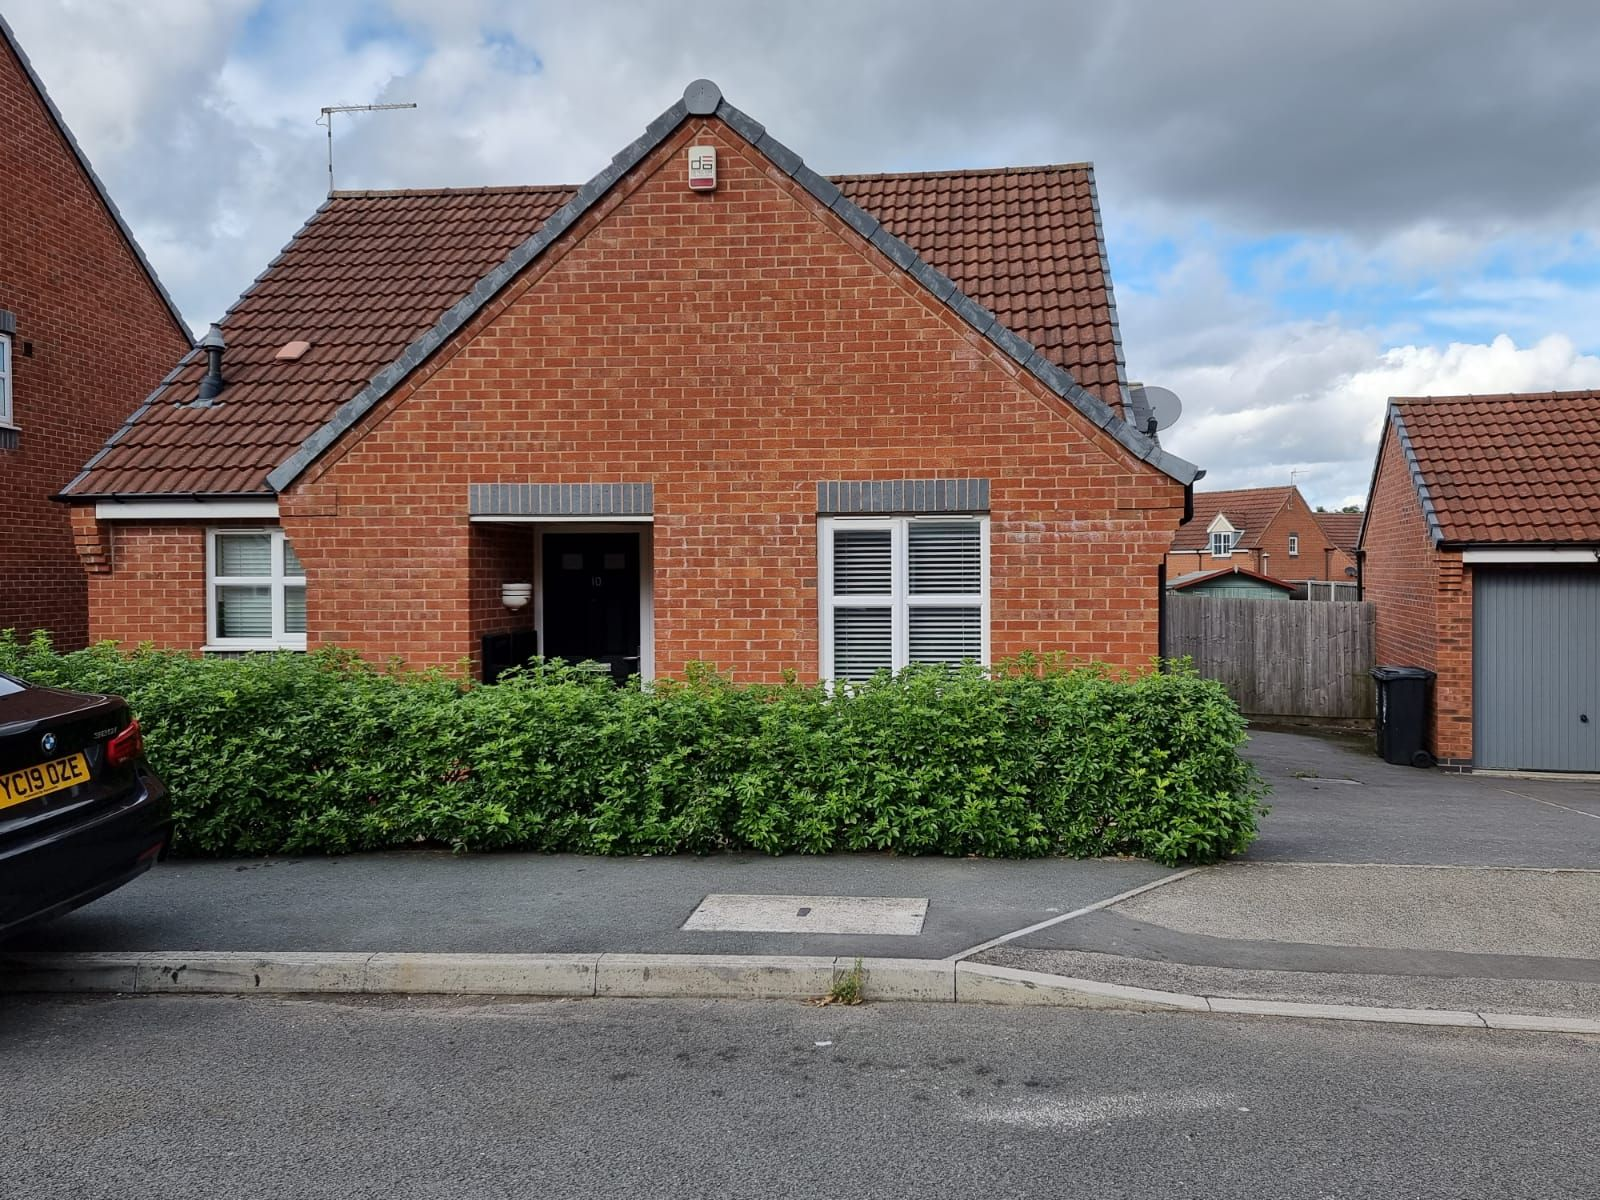 2 bedroom detached bungalow For Sale in Leicester - Photograph 1.